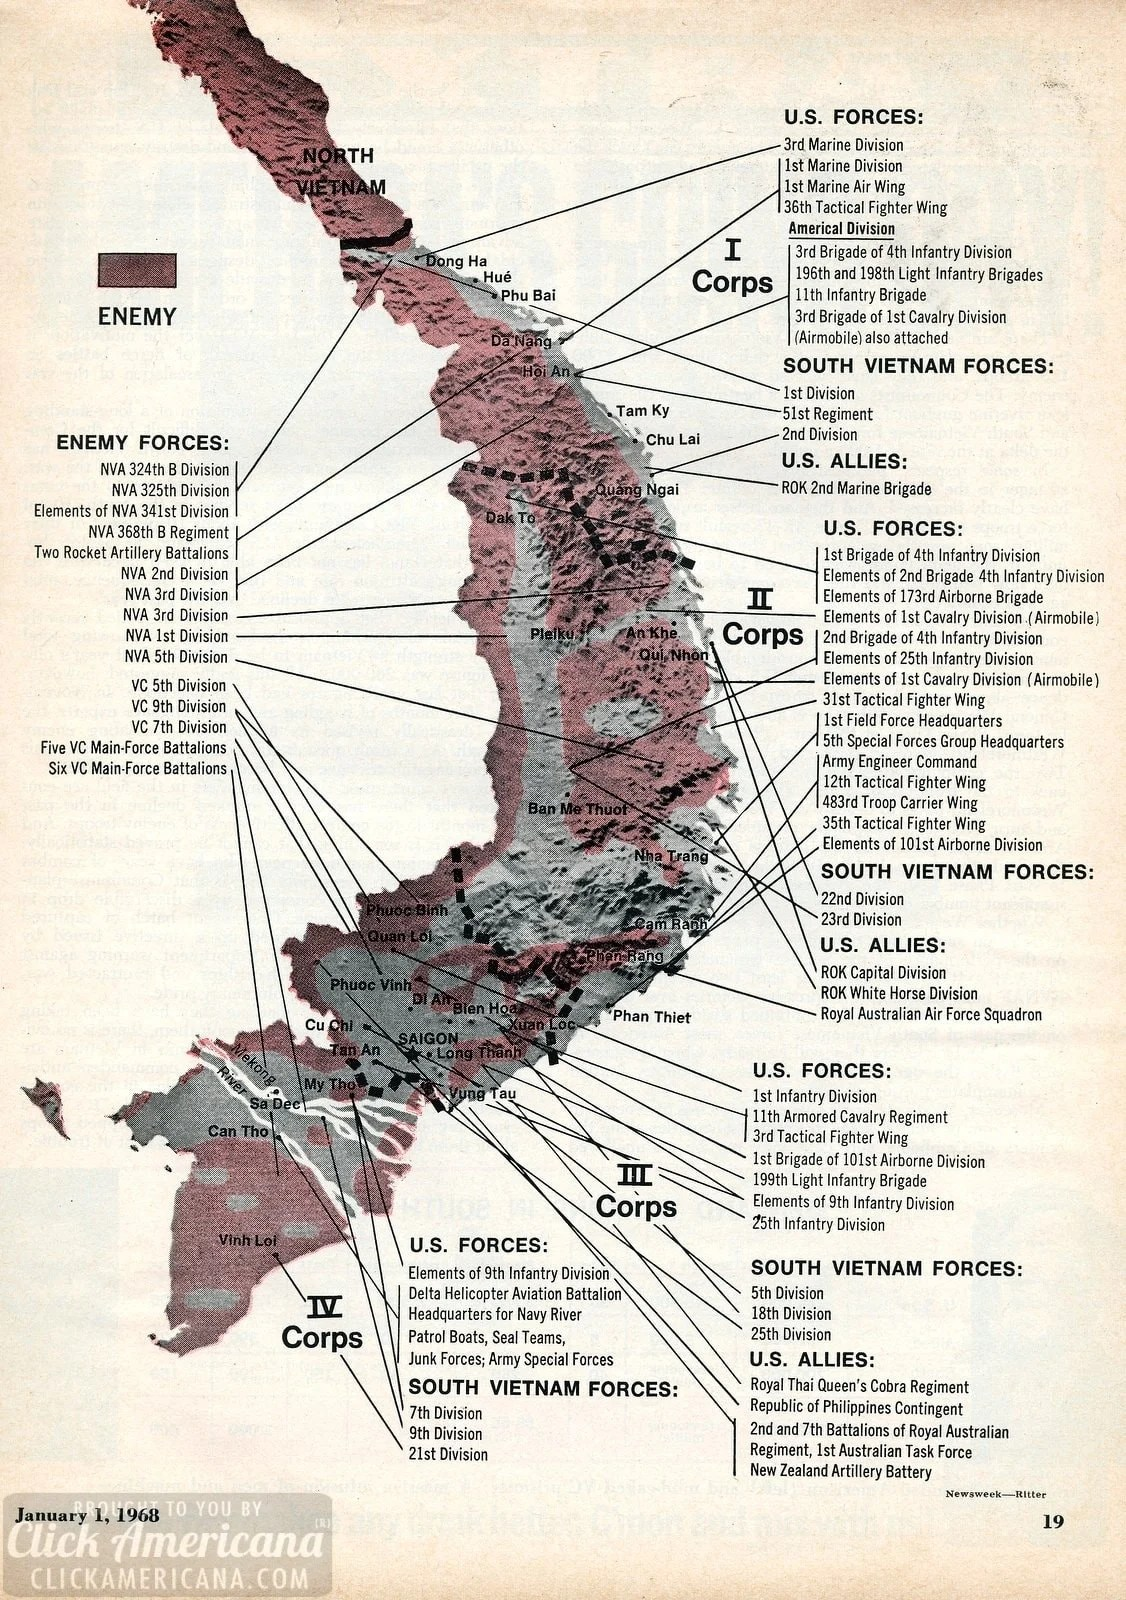 Lai Khe Vietnam Map.Vietnam War Map Corps To Corps 1968 Click Americana